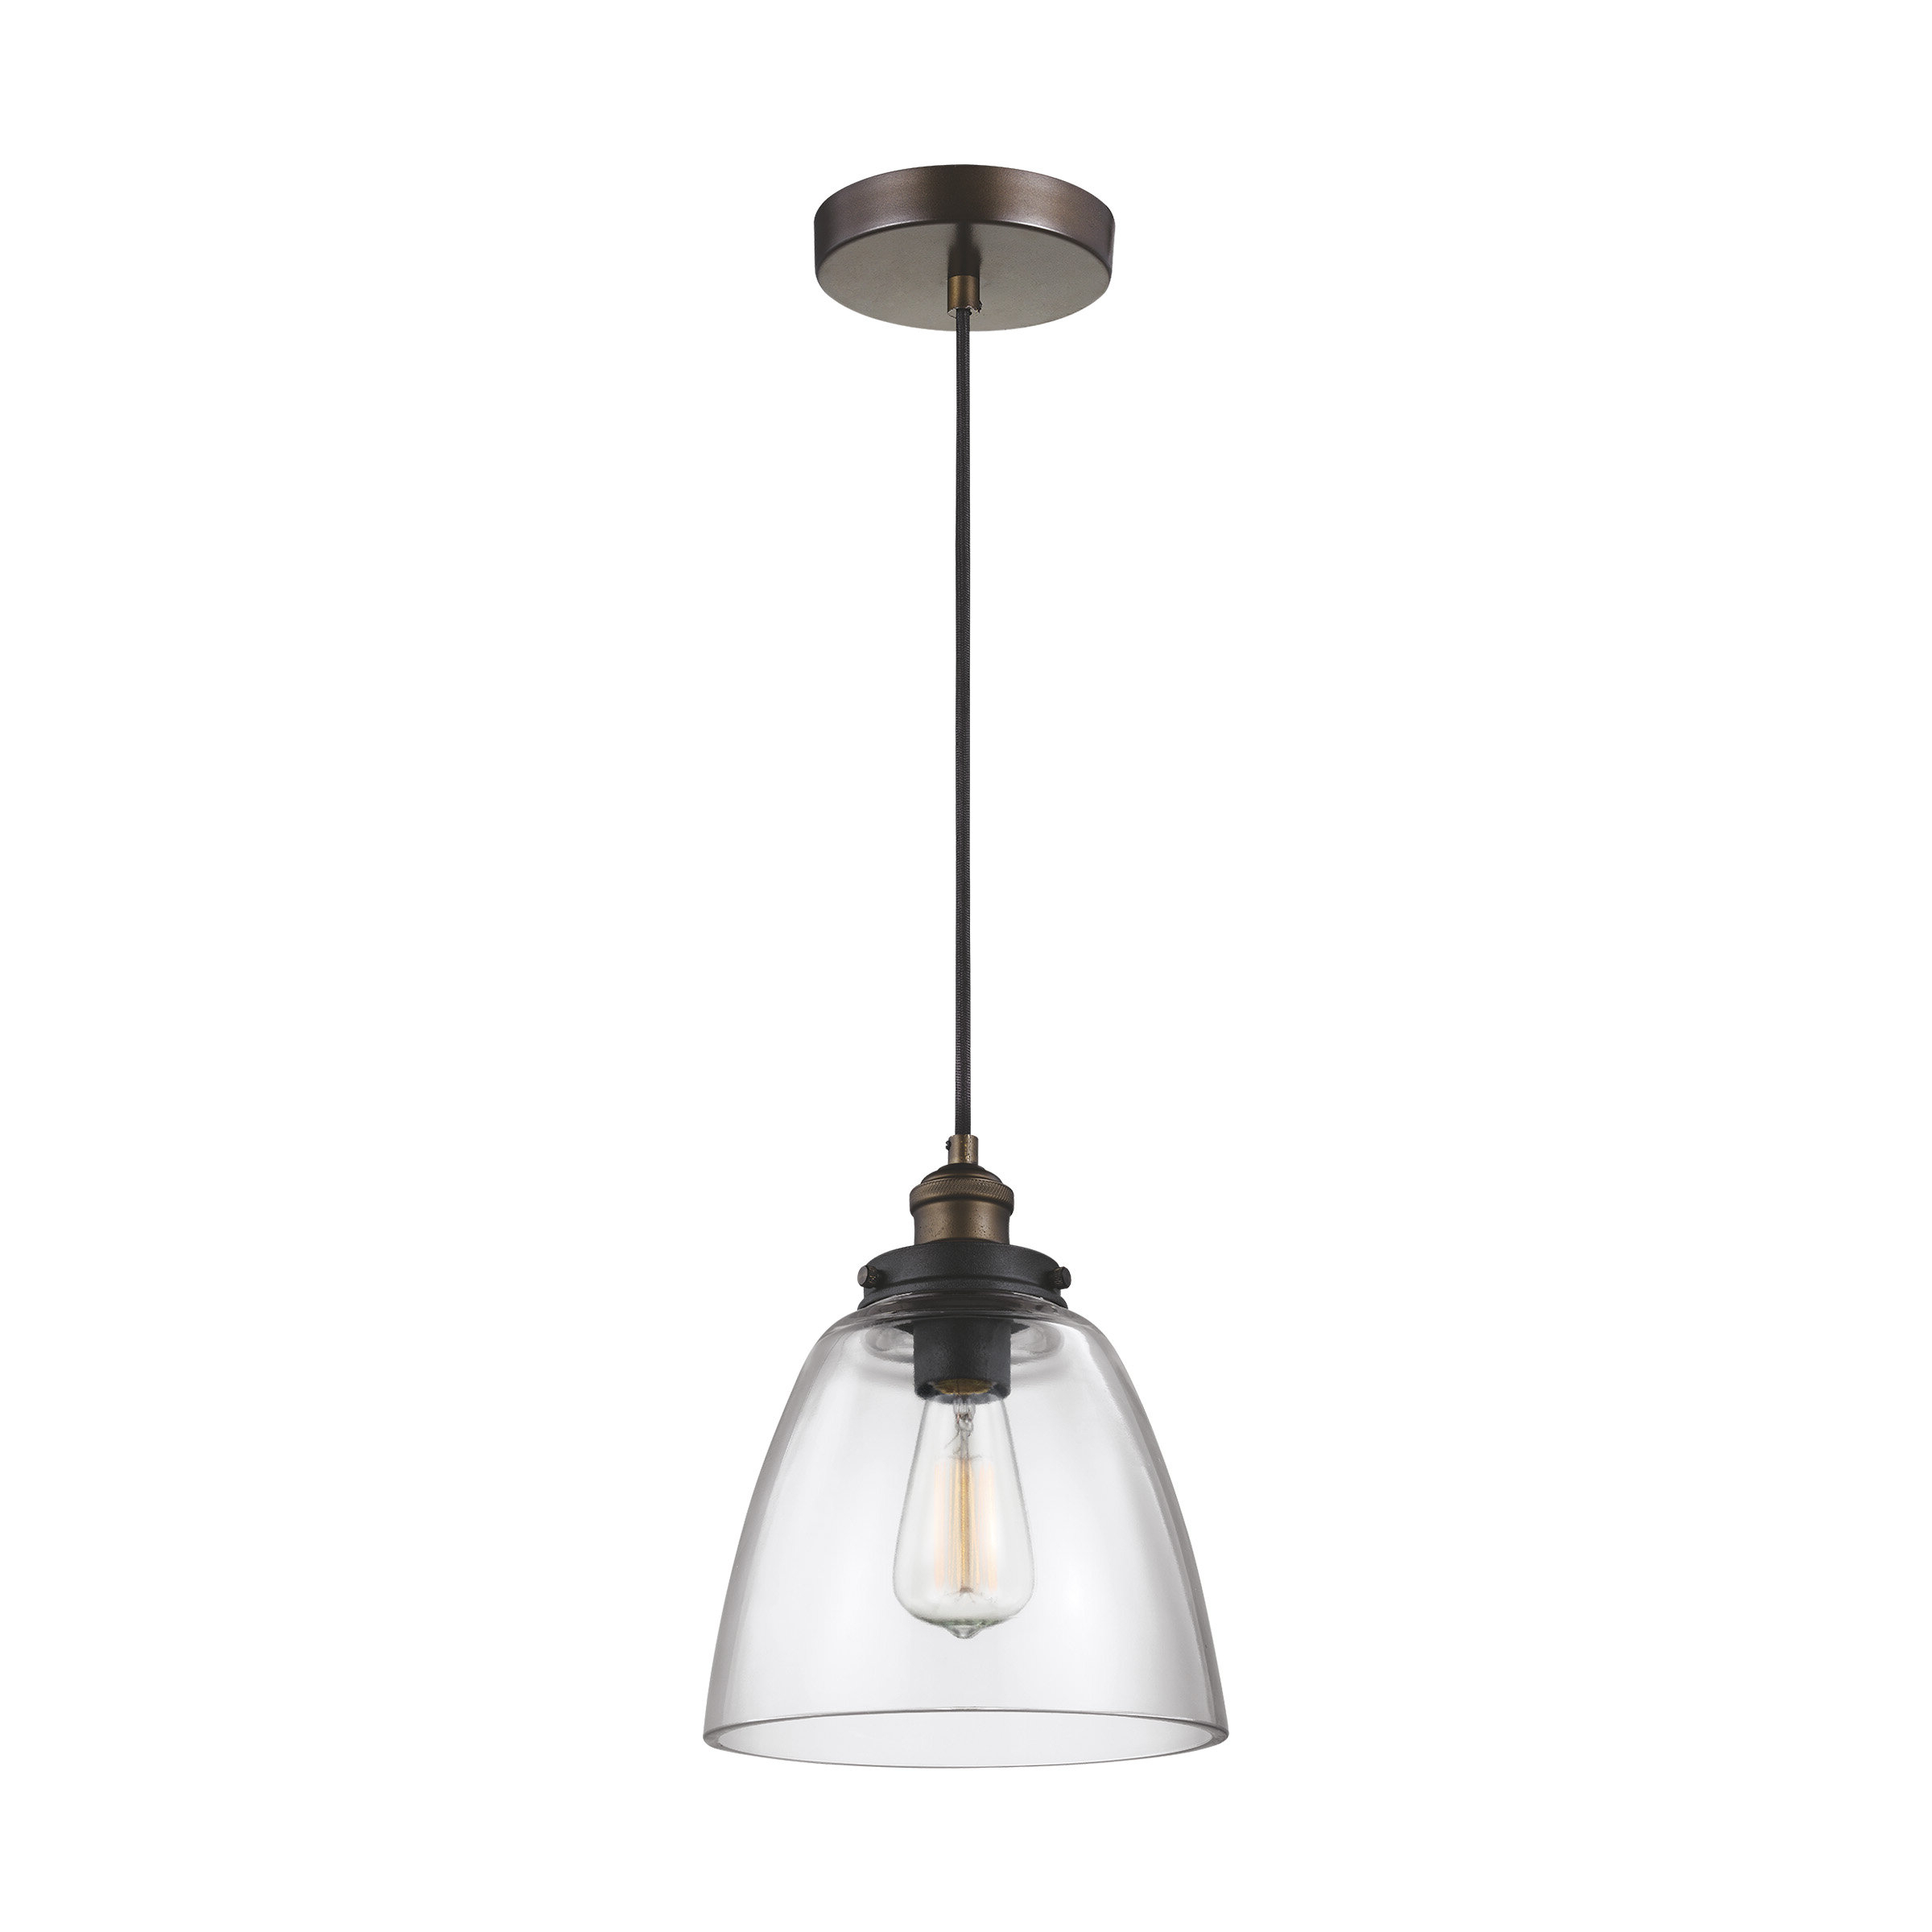 Goldie 1 Light Single Bell Pendants With Regard To Preferred Bedford 1 Light Single Cone Pendant (View 12 of 25)